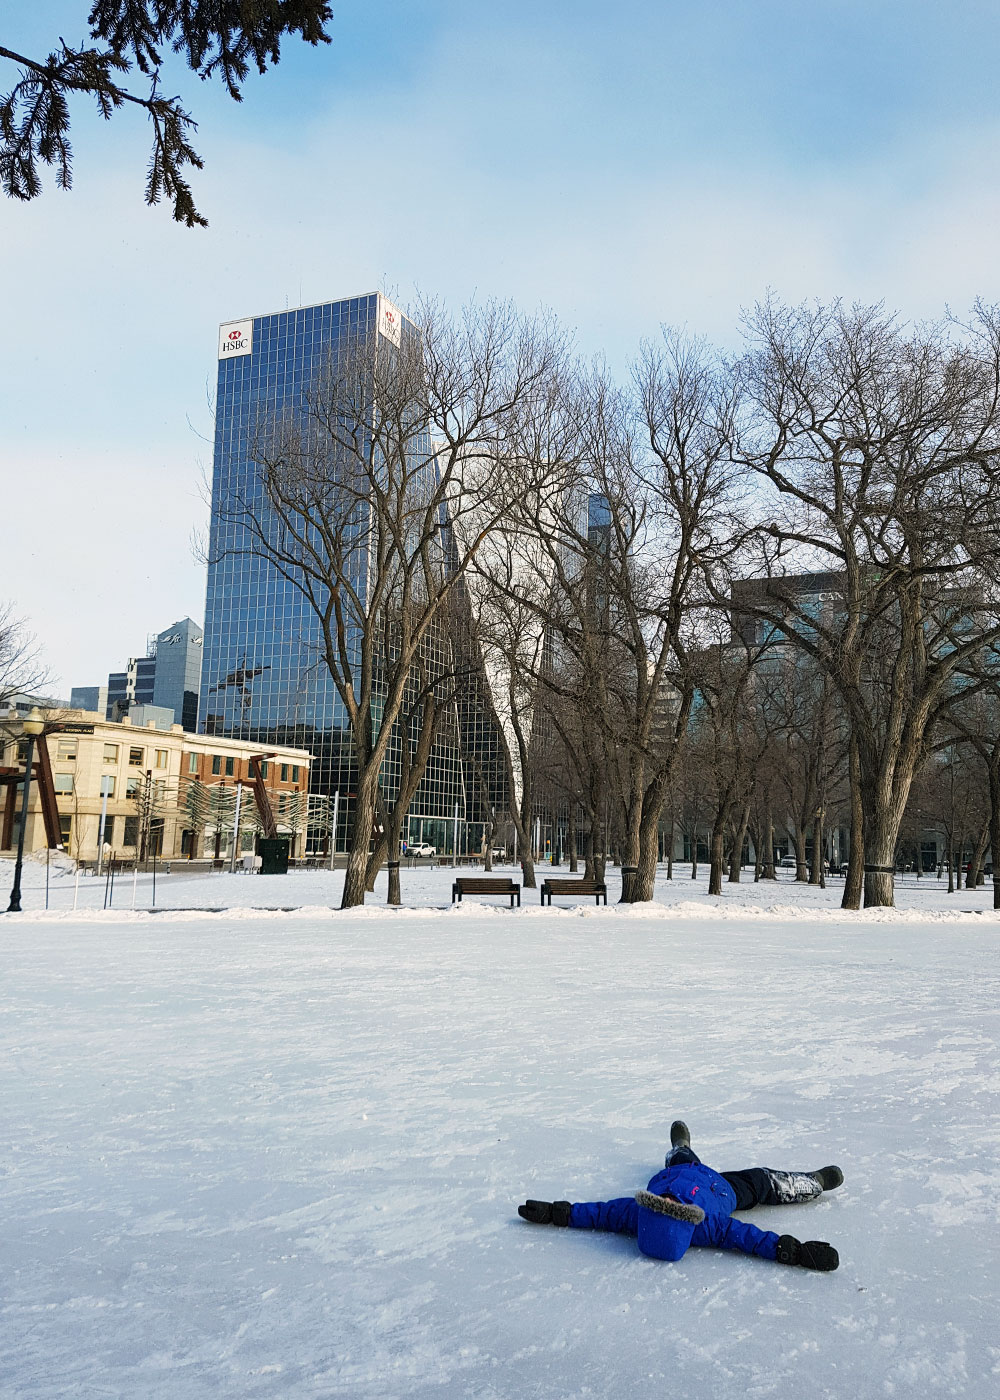 Rink downtown